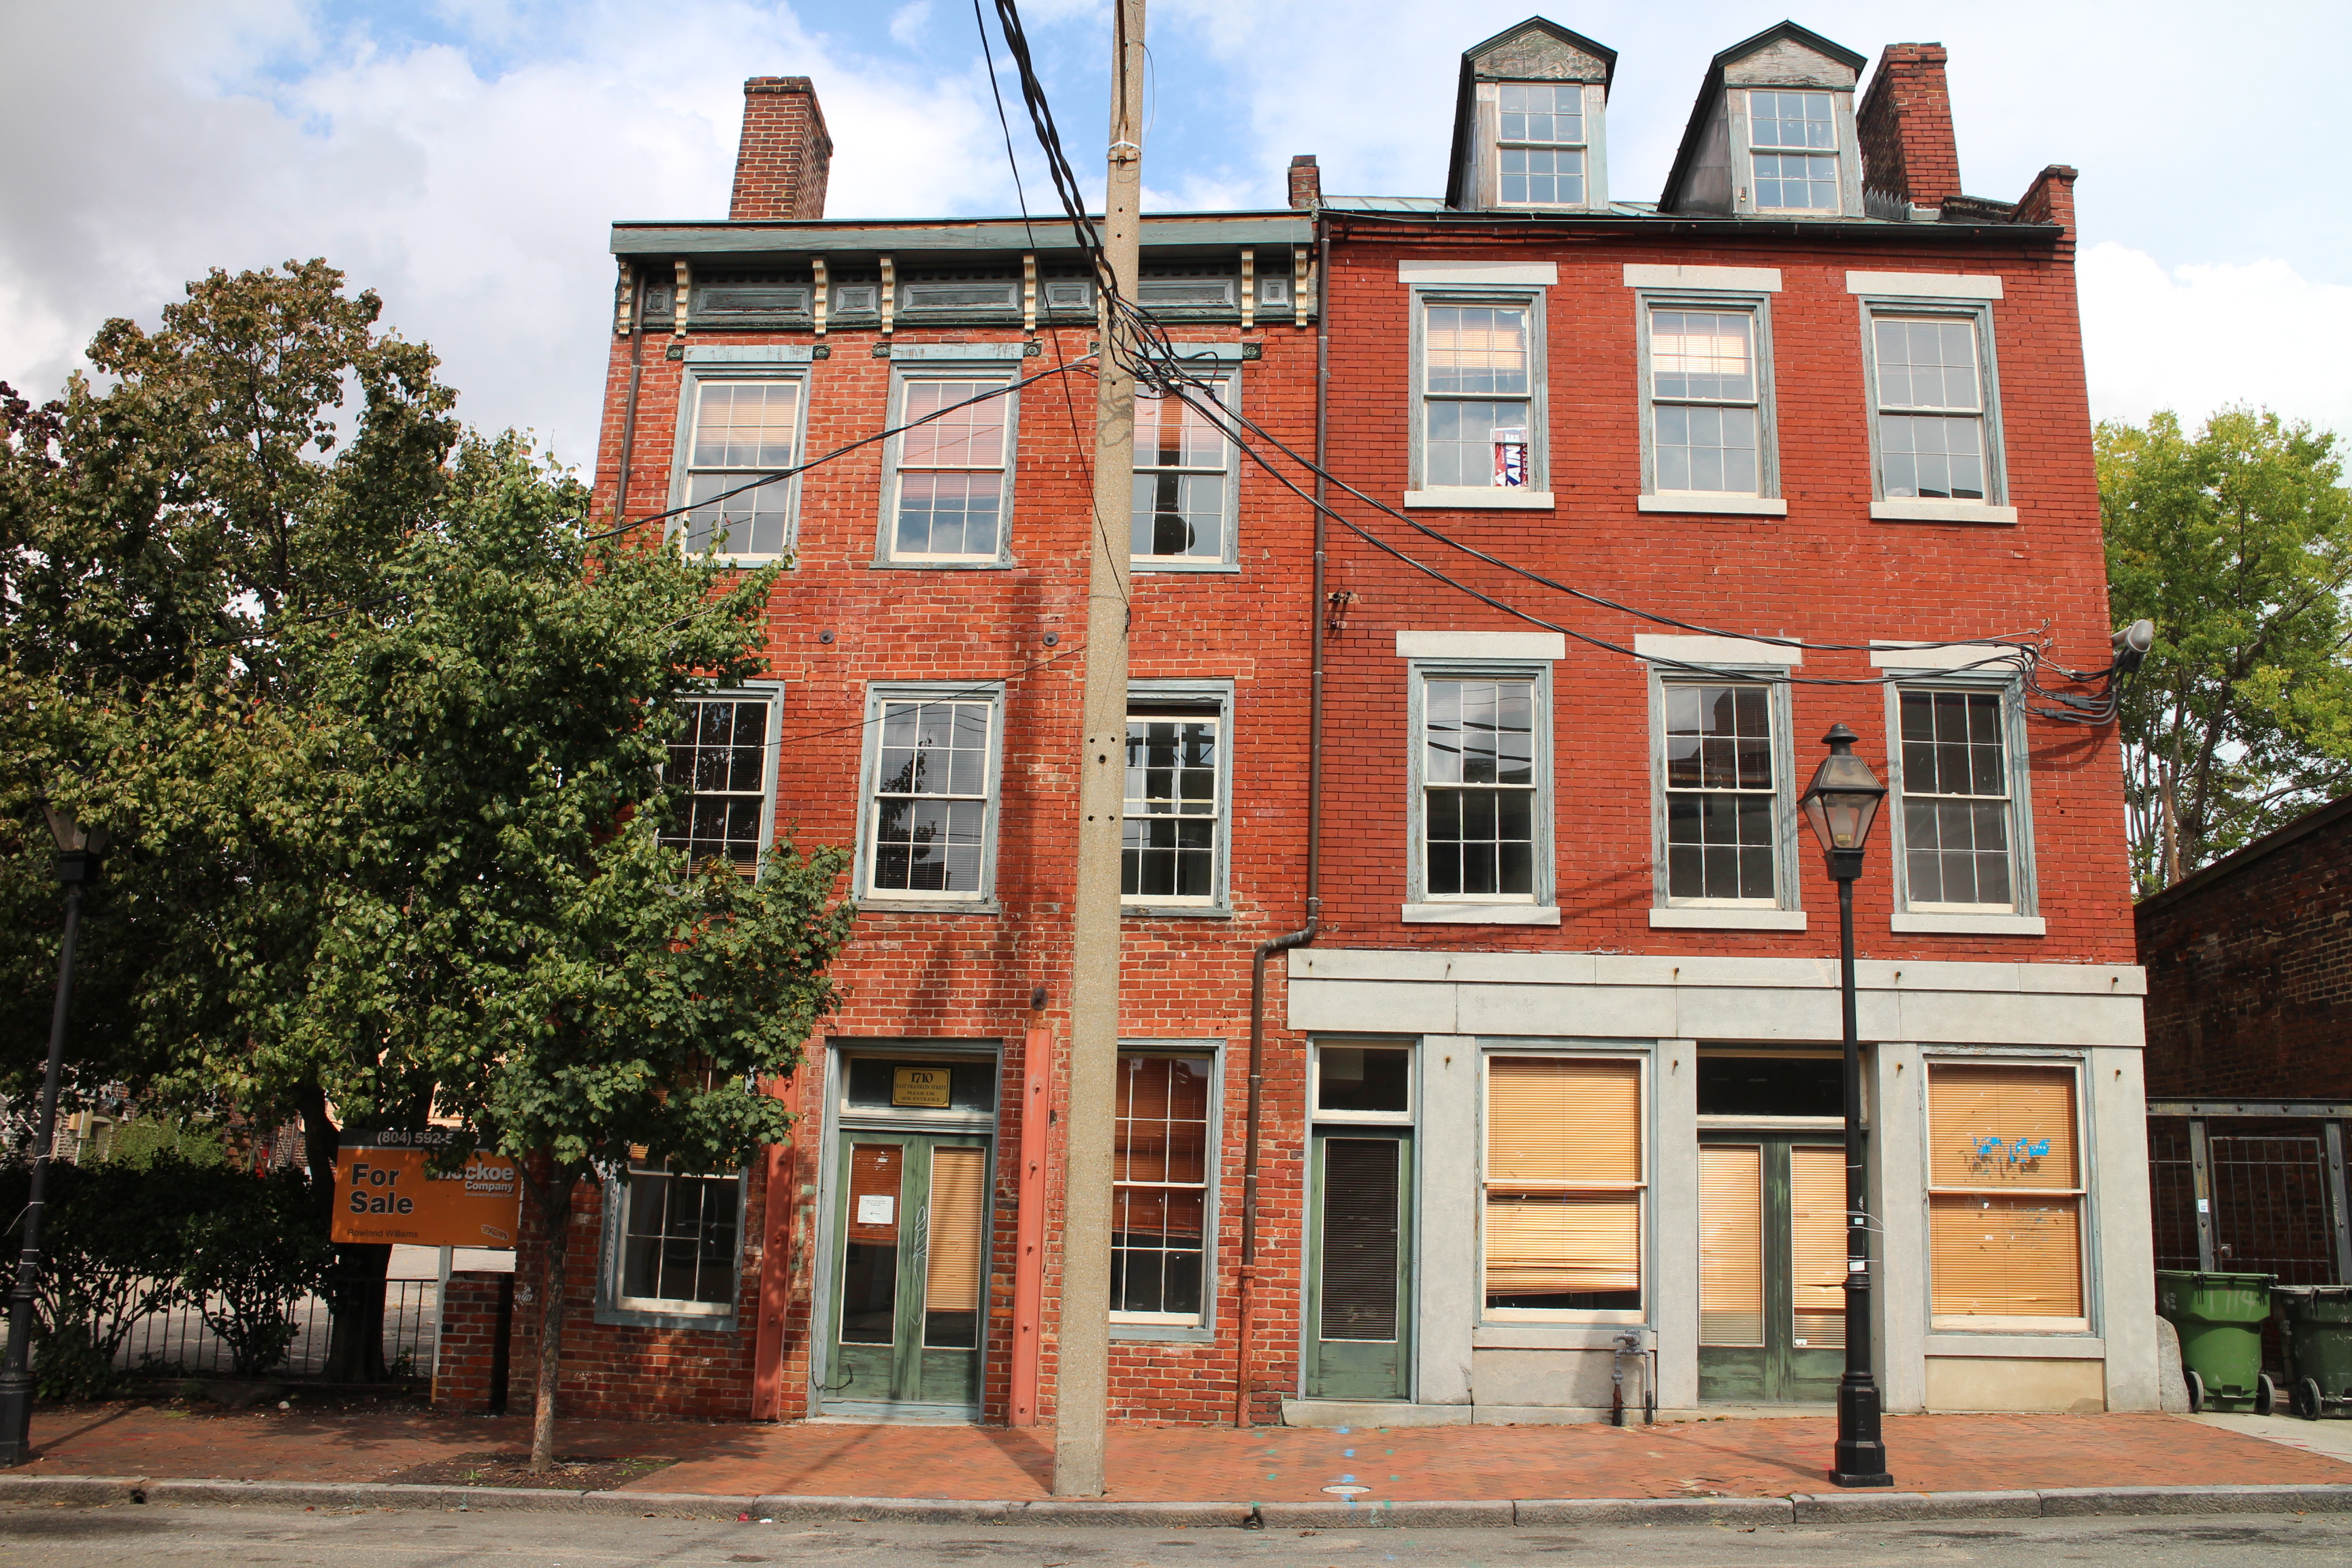 170-year-old building set for apartment rehab - Richmond